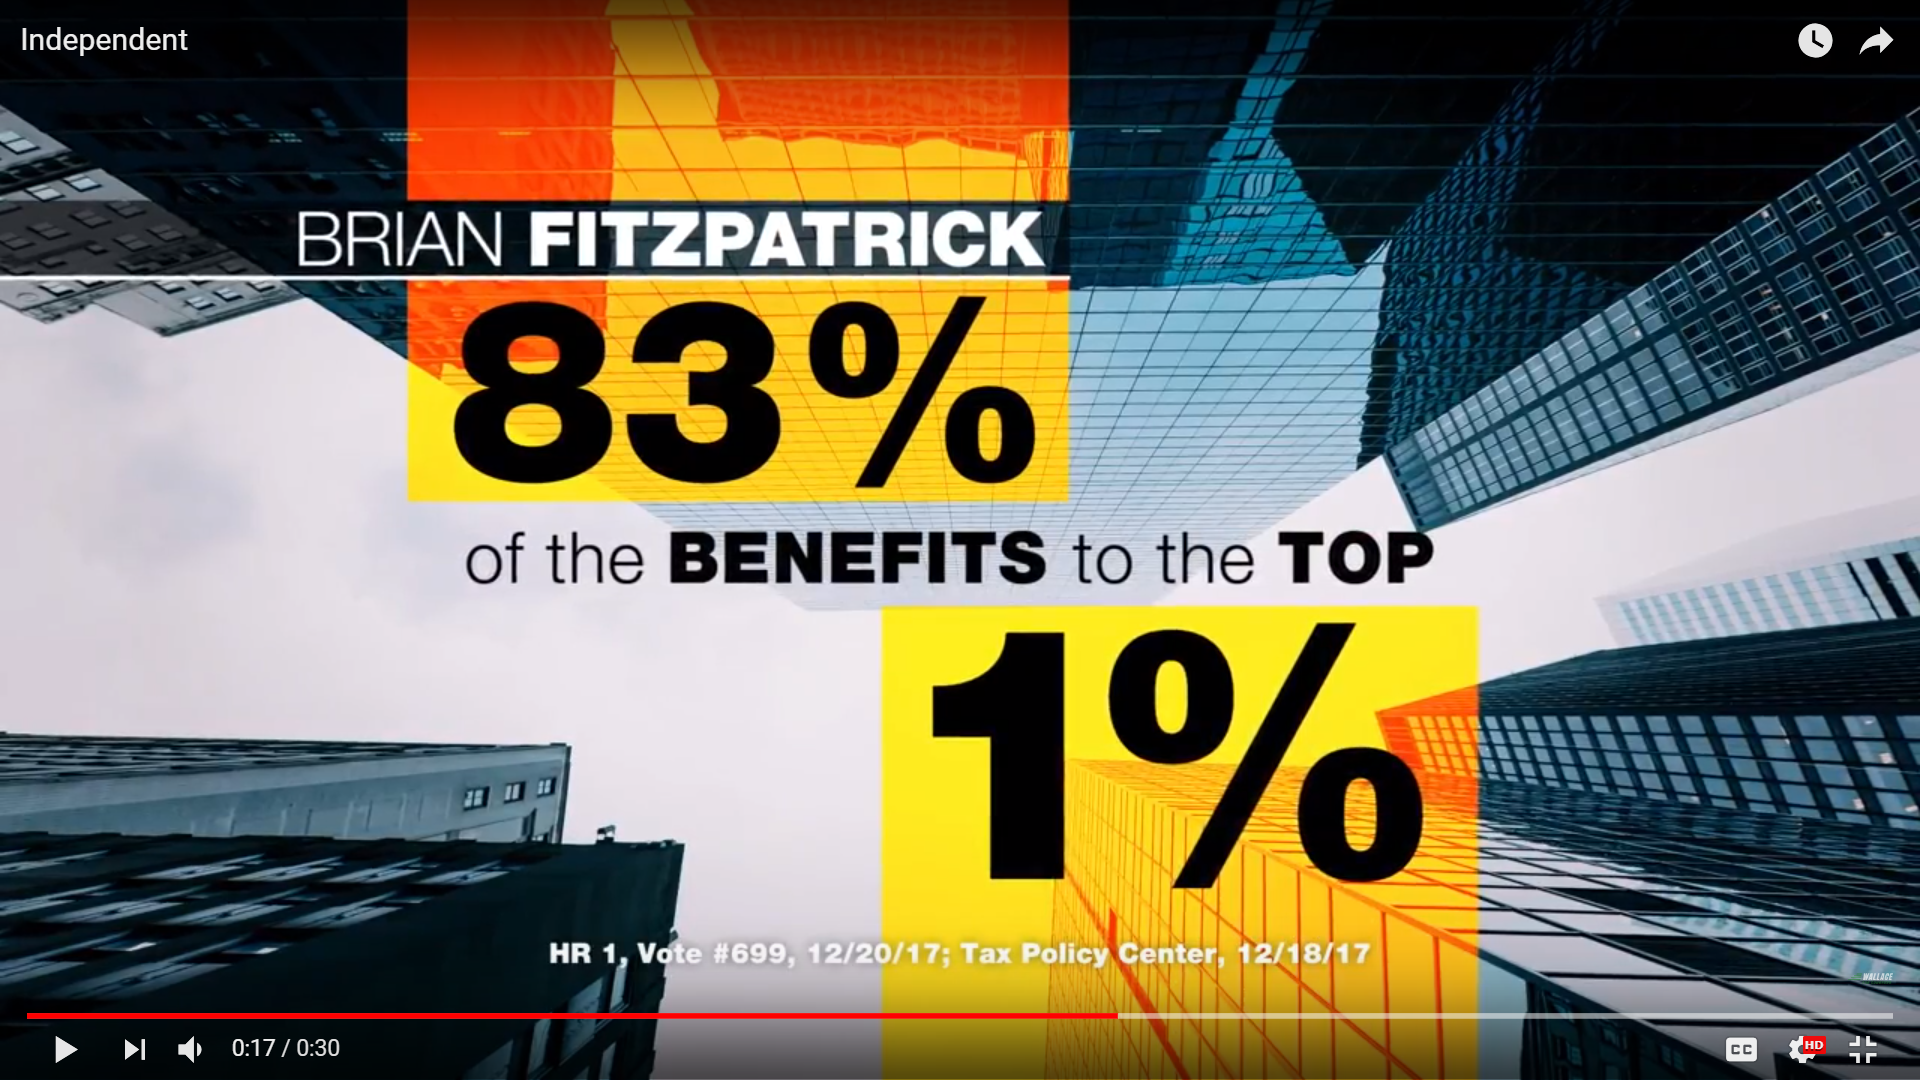 In this campaign ad from Democrat Scott Wallace's campaign, Republican Brian Fitzpatrick is criticized over a tax bill.